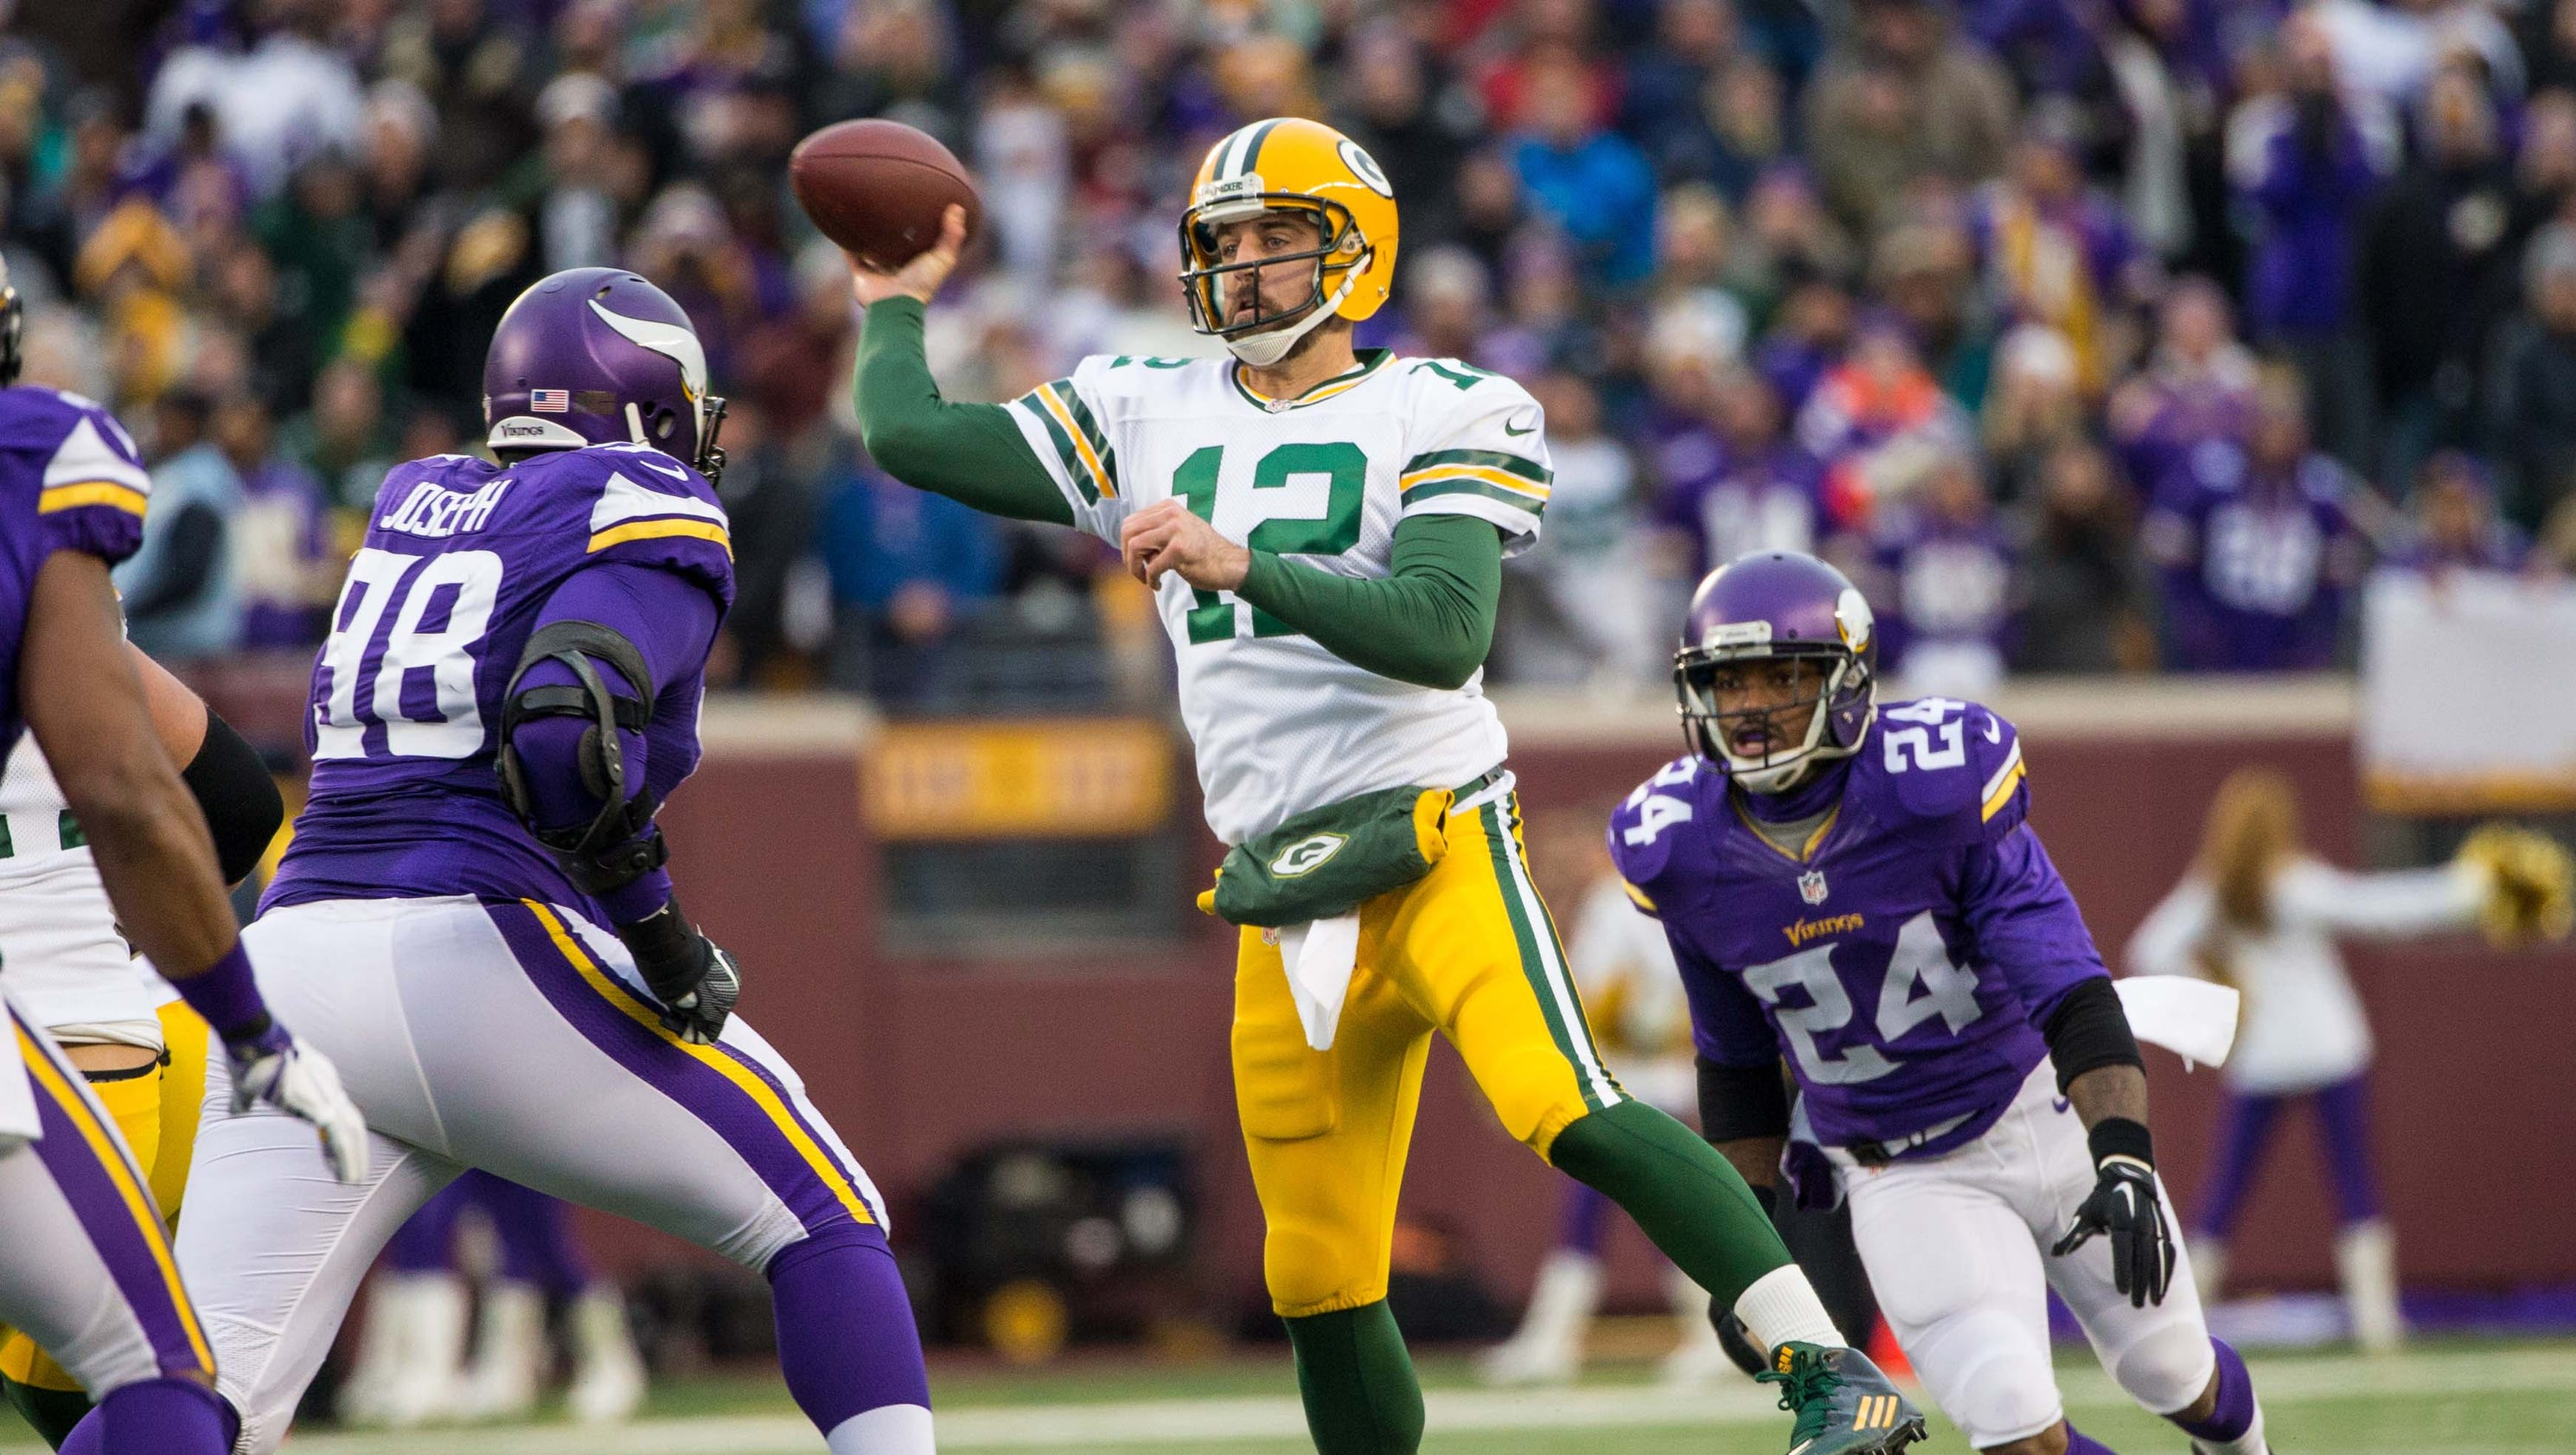 The star tribune 2019s matt vensel gives his three takes on the vikings-green bay game: 1 the vikings still have